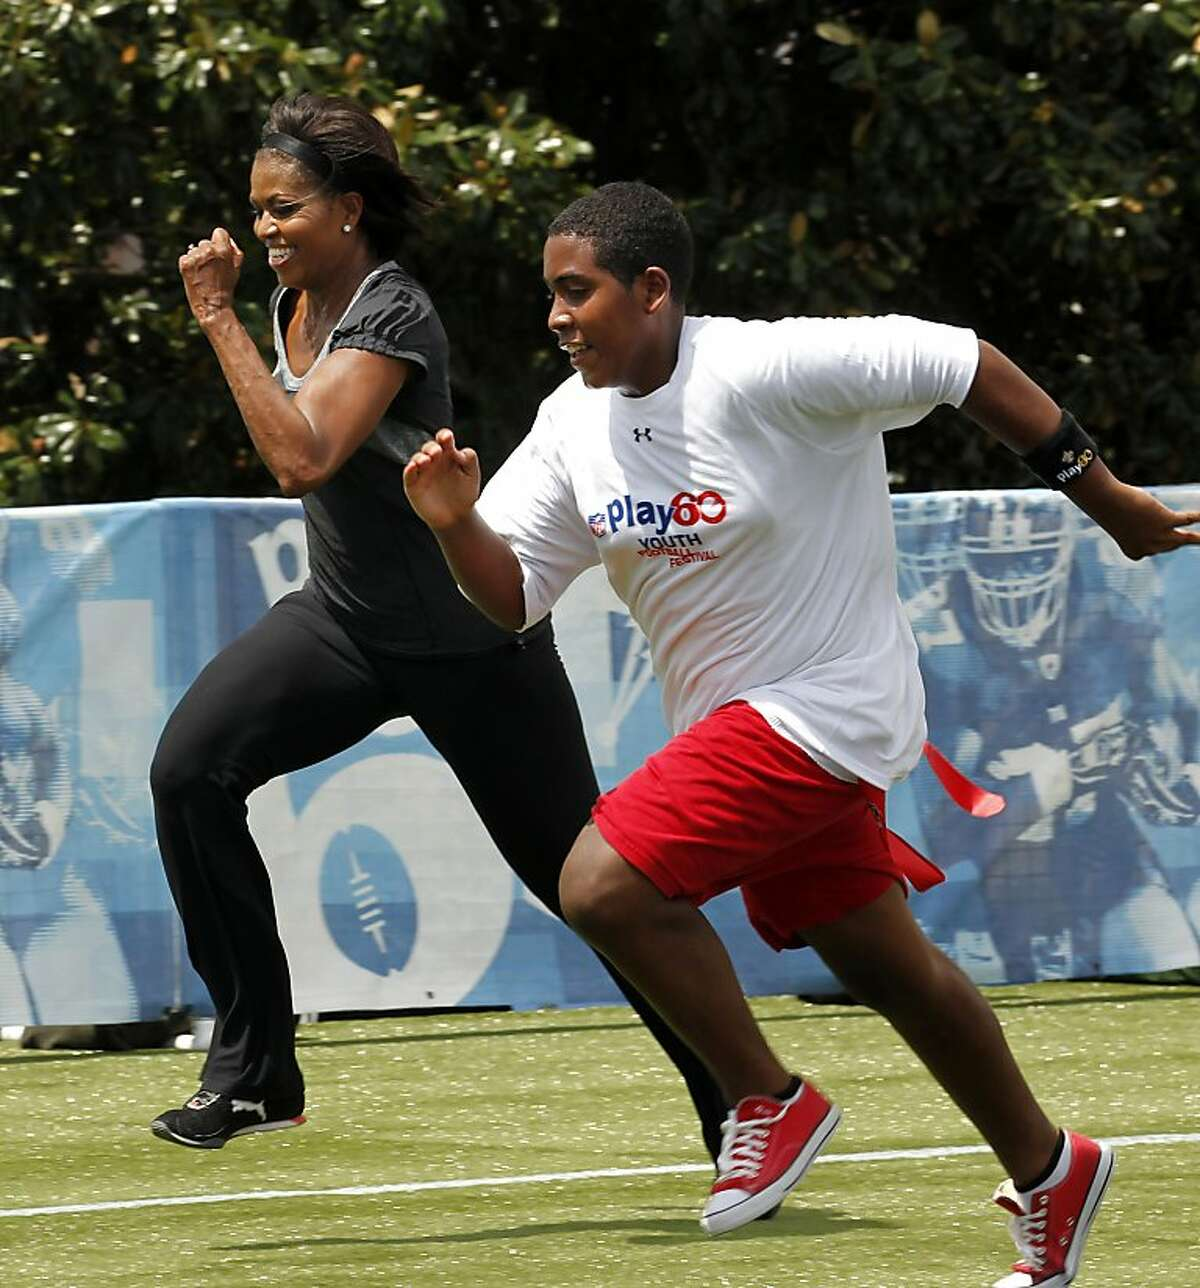 FILE - In this Sept. 8, 2010, file photo, first lady Michelle Obama runs a 40-yard sprint during the Let's Move! Campaign and the NFL's Play 60 Campaign festivities with area youth, to promote exercise and fight childhood obesity, in New Orleans. Recent changes put in place by the food industry are in response to the campaign against childhood obesity that Obama began waging three years ago. (AP Photo/Gerald Herbert, file)